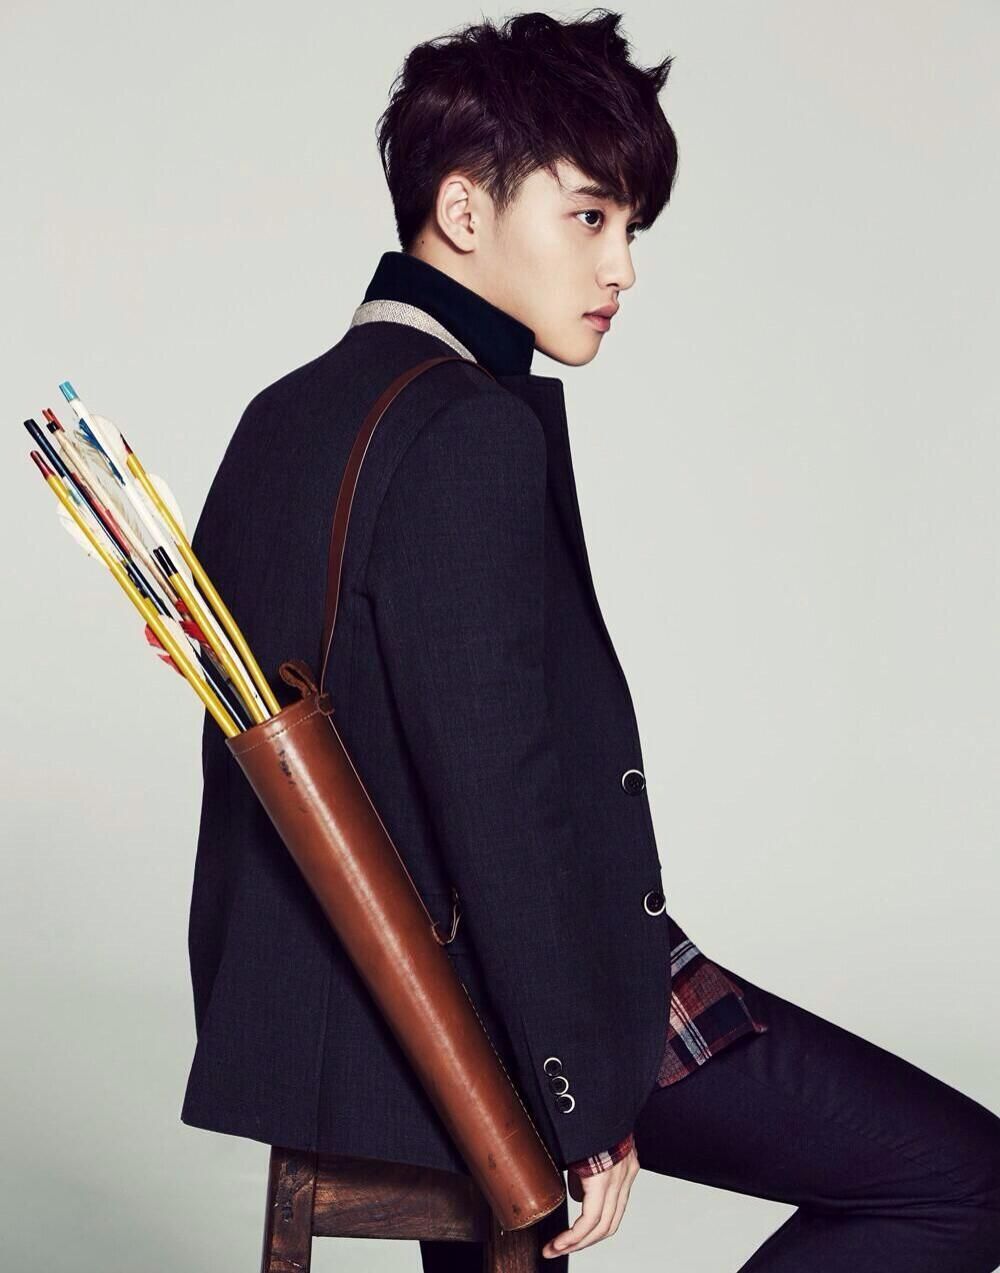 Kyungsoo....Doobie!!!! Now I know what happened I got hit in the heart with one of those arrows.